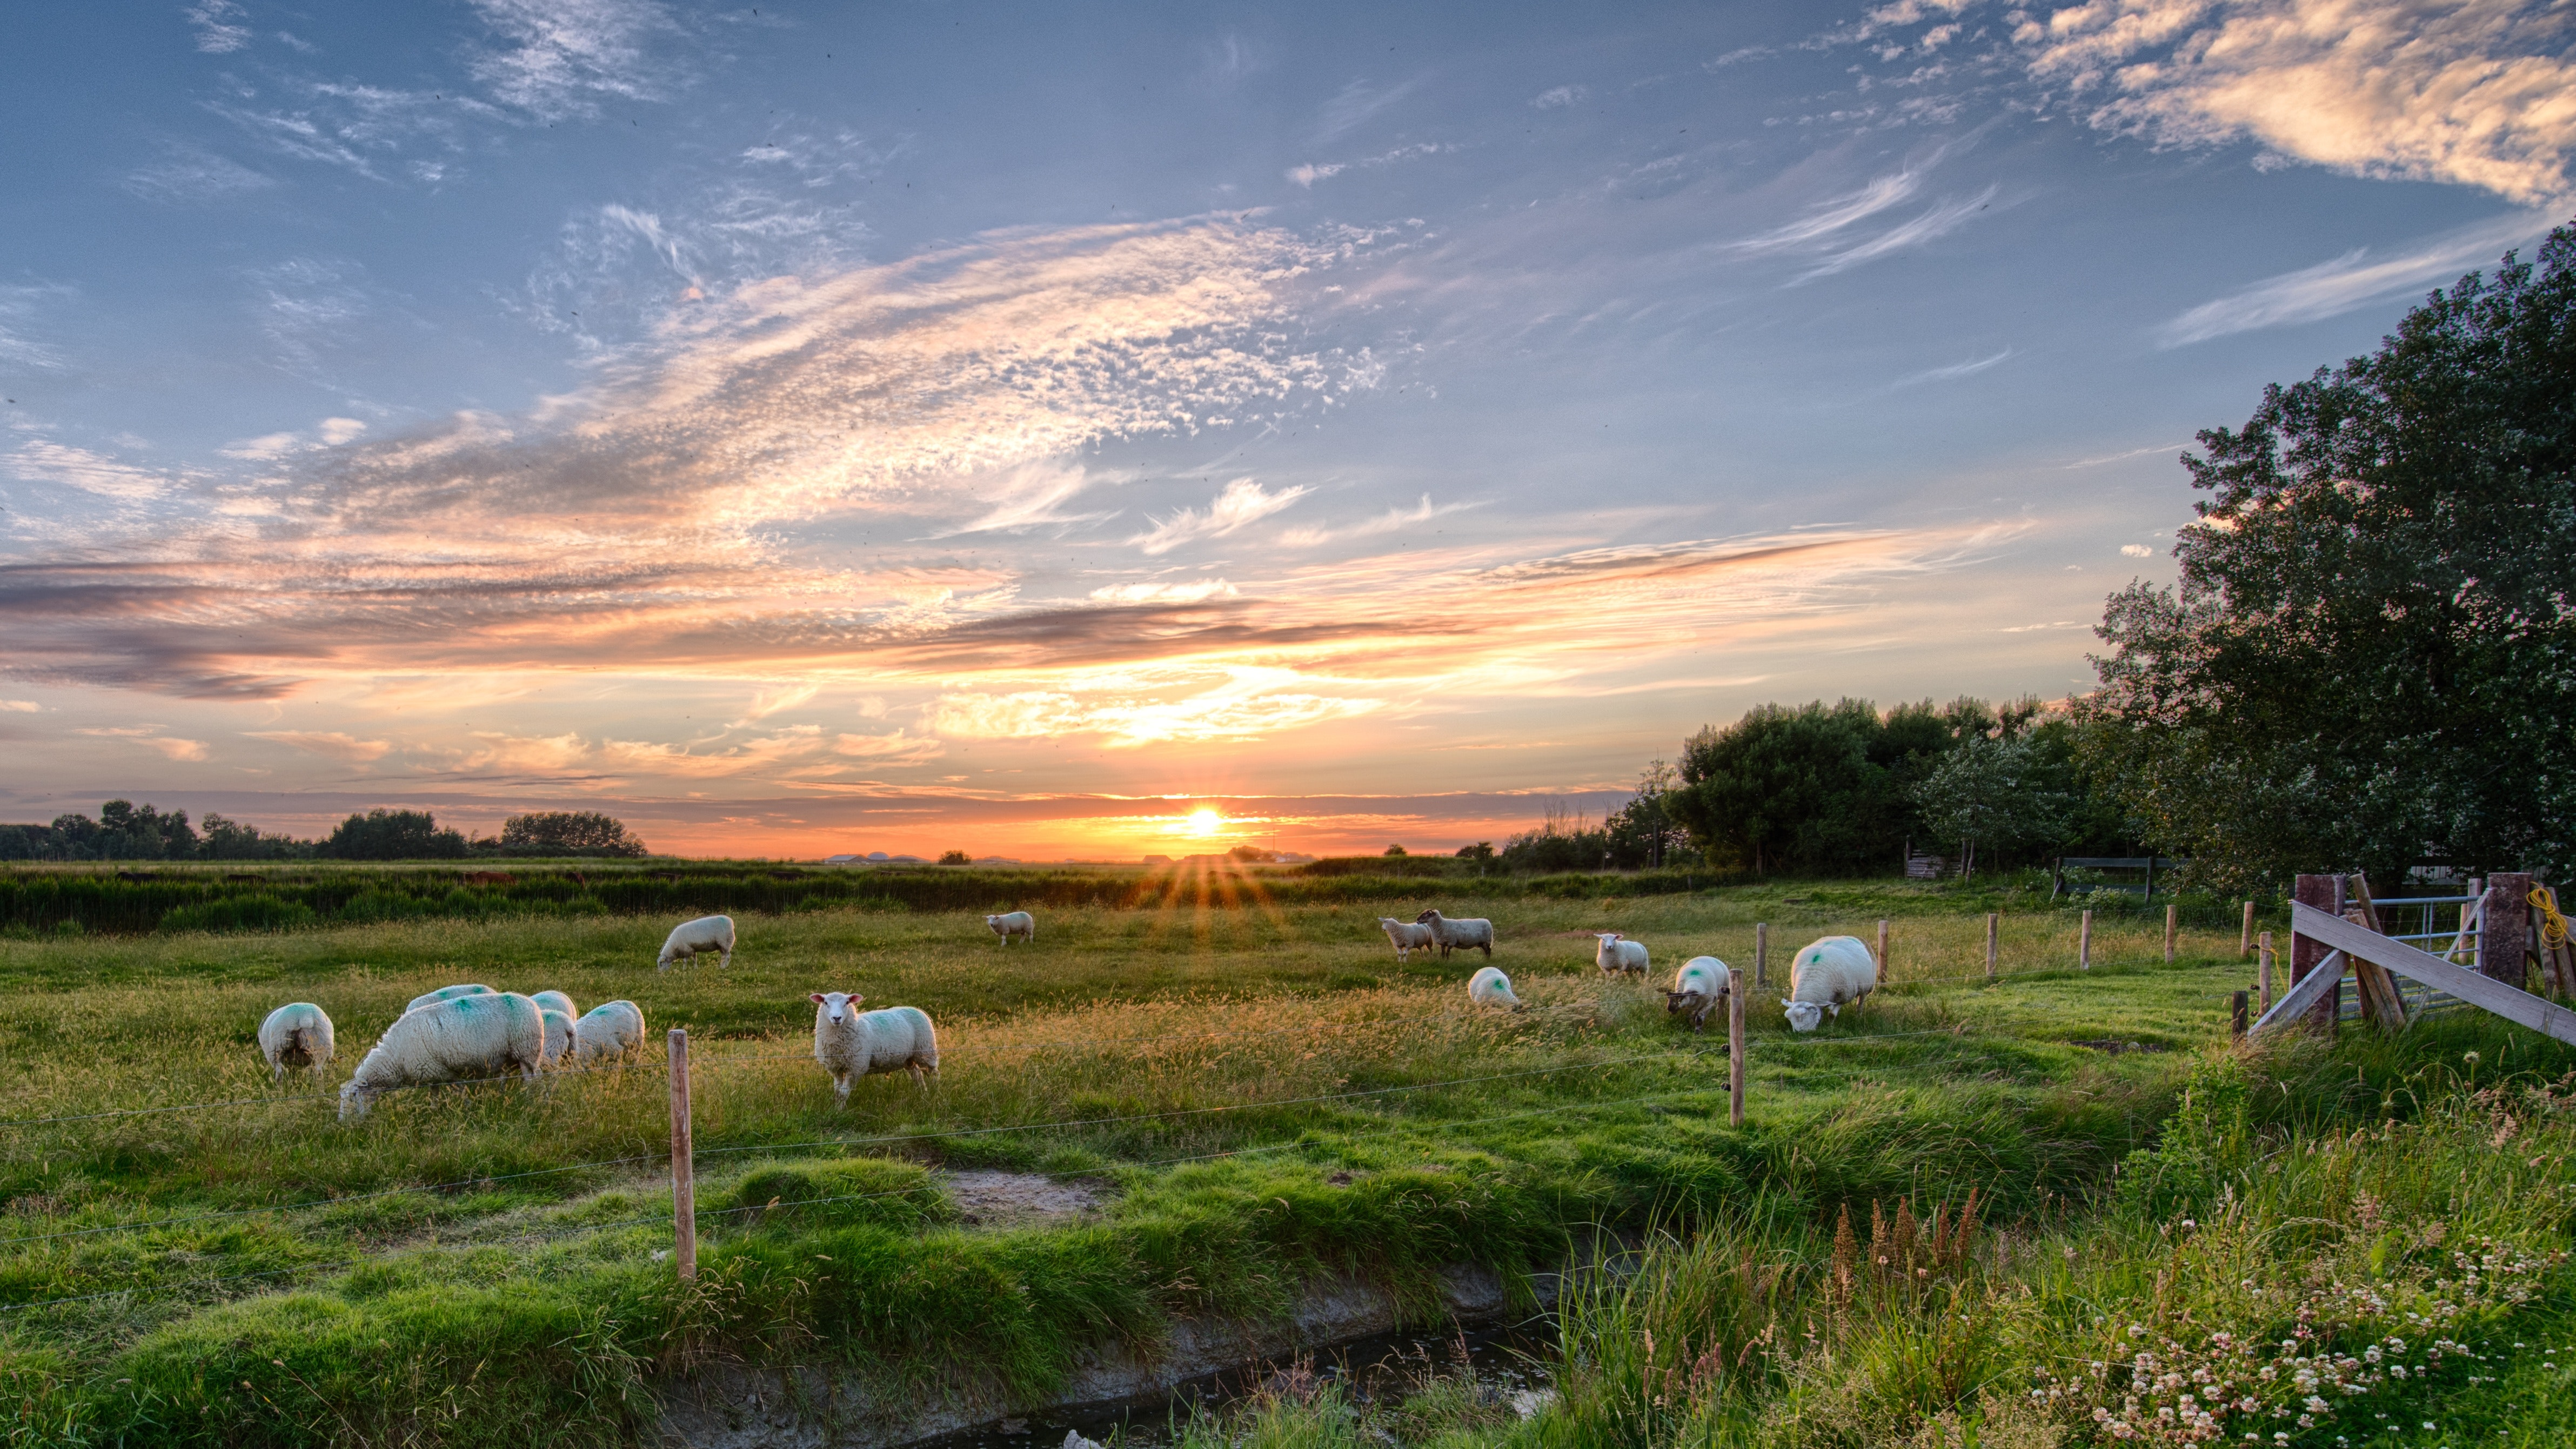 agriculture-clouds-country-462119 (1)